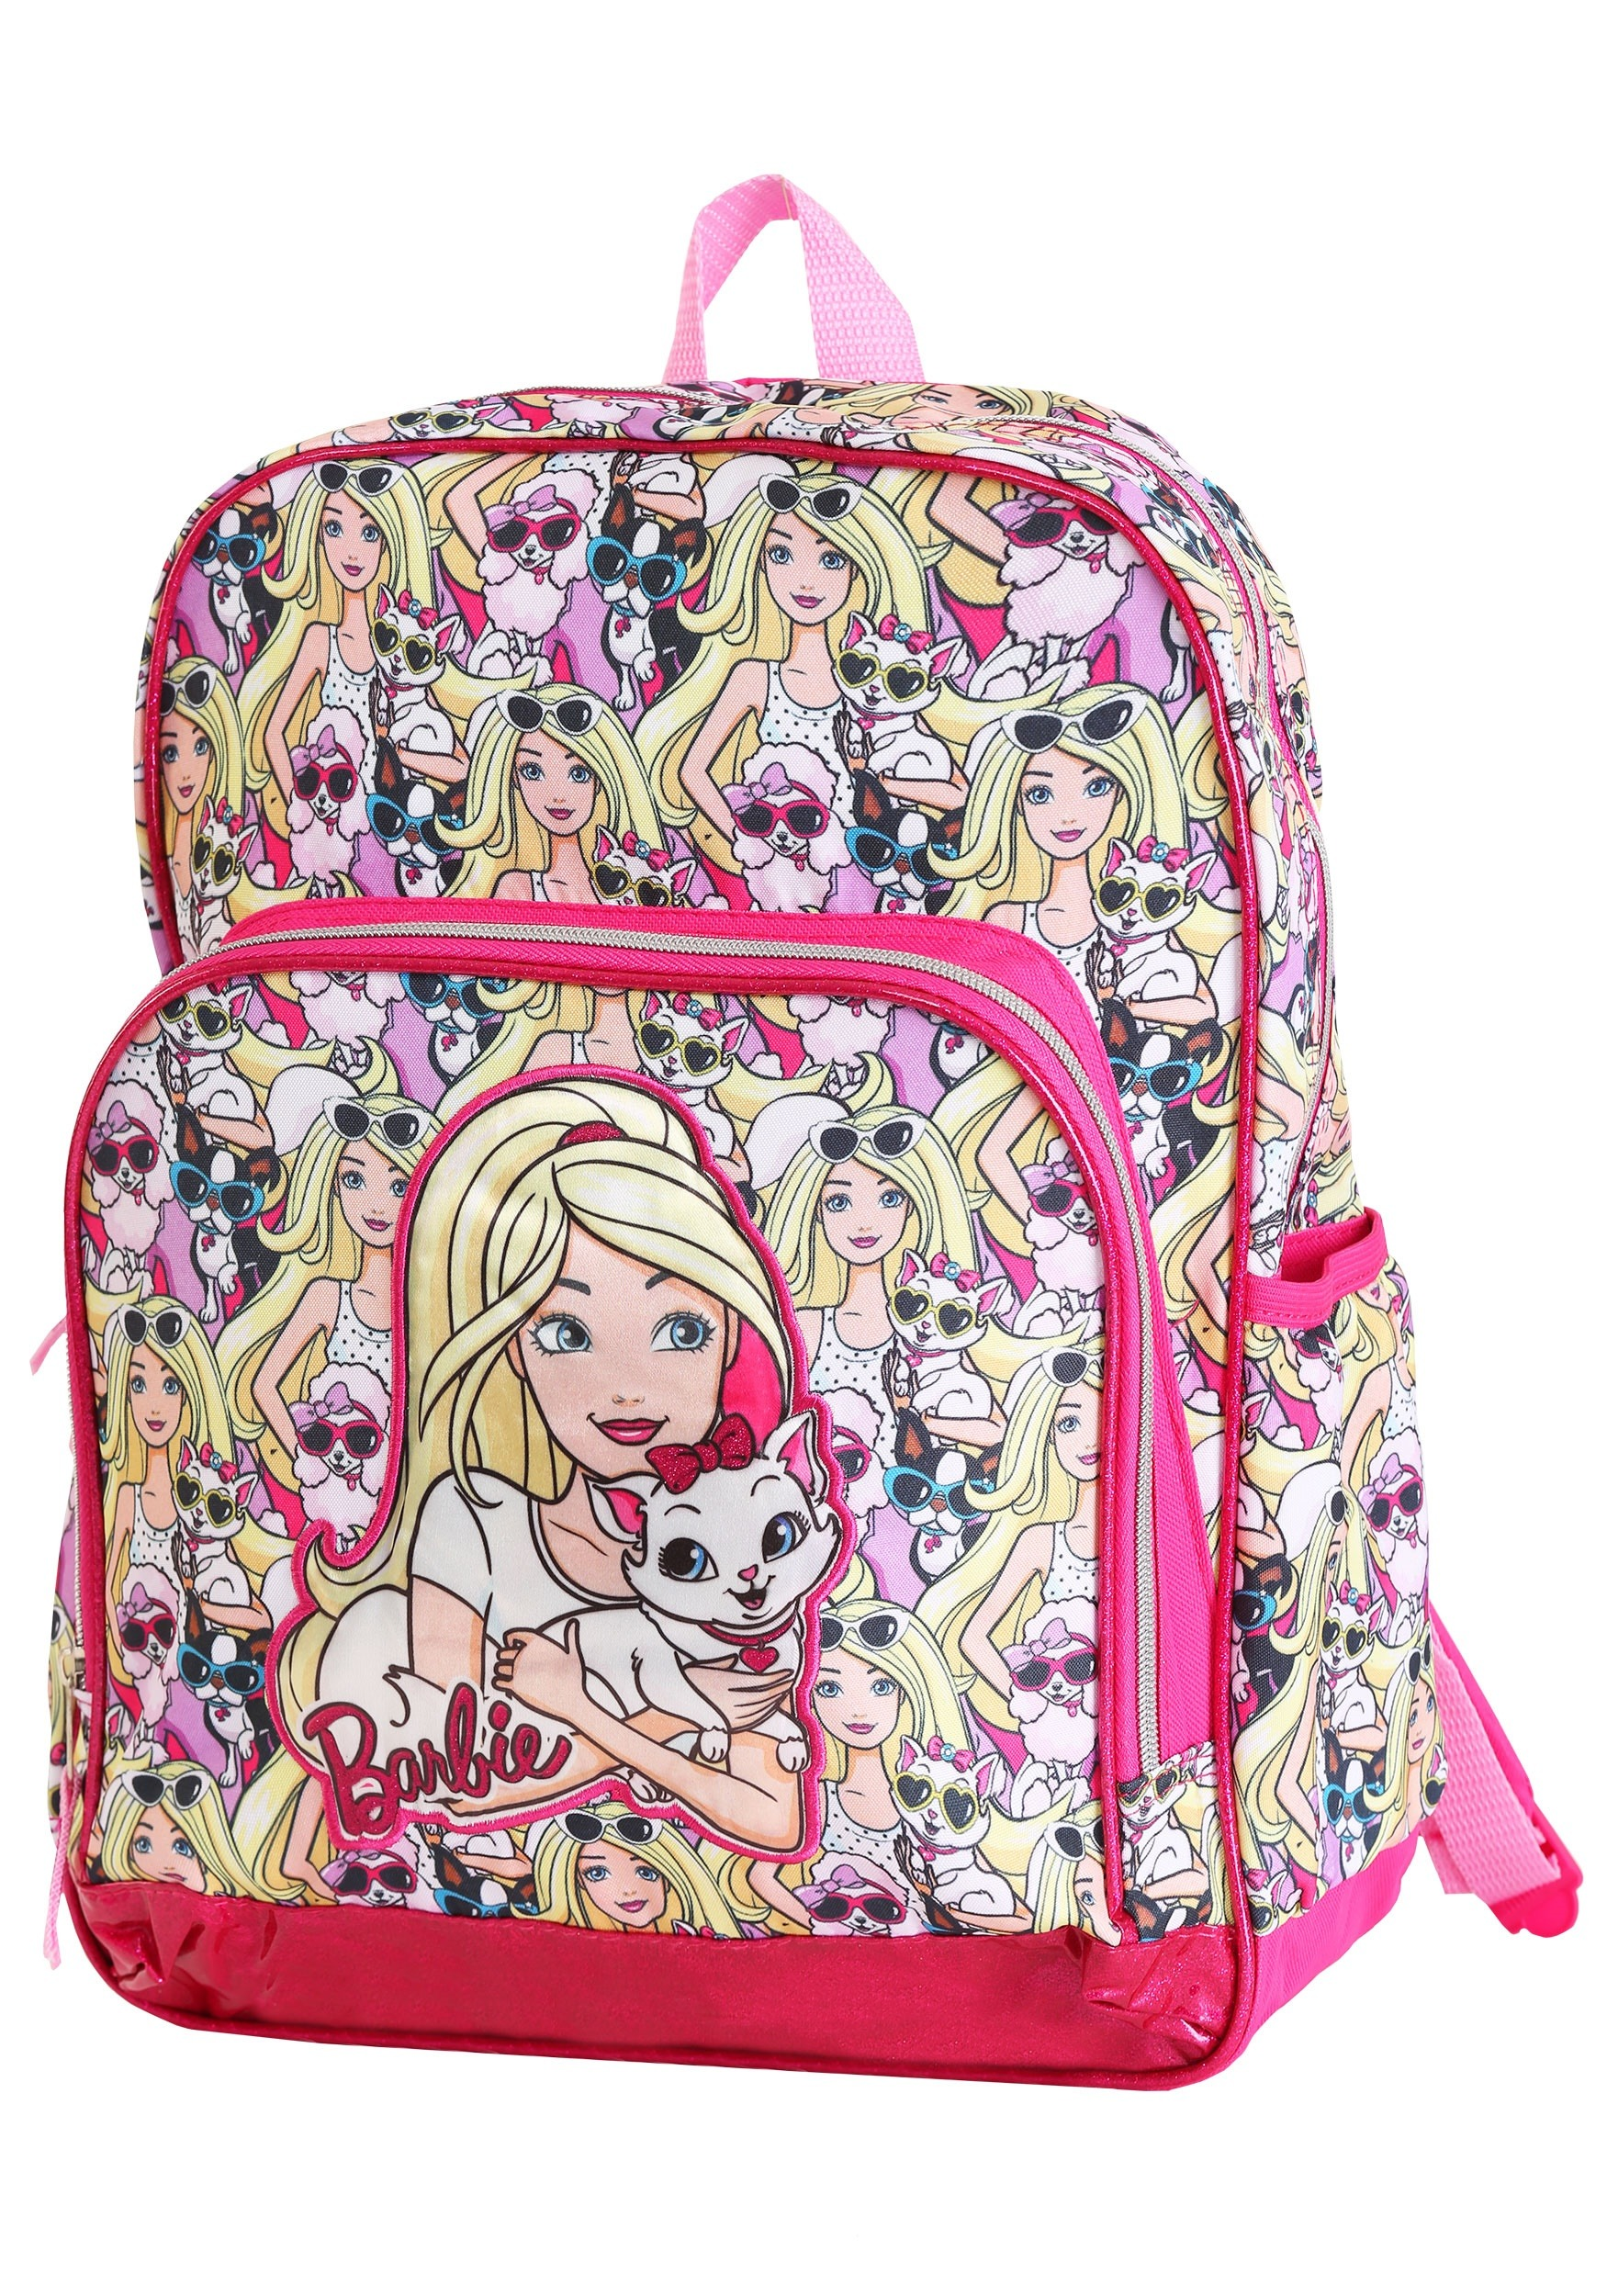 Barbie_16_Kids_Backpack